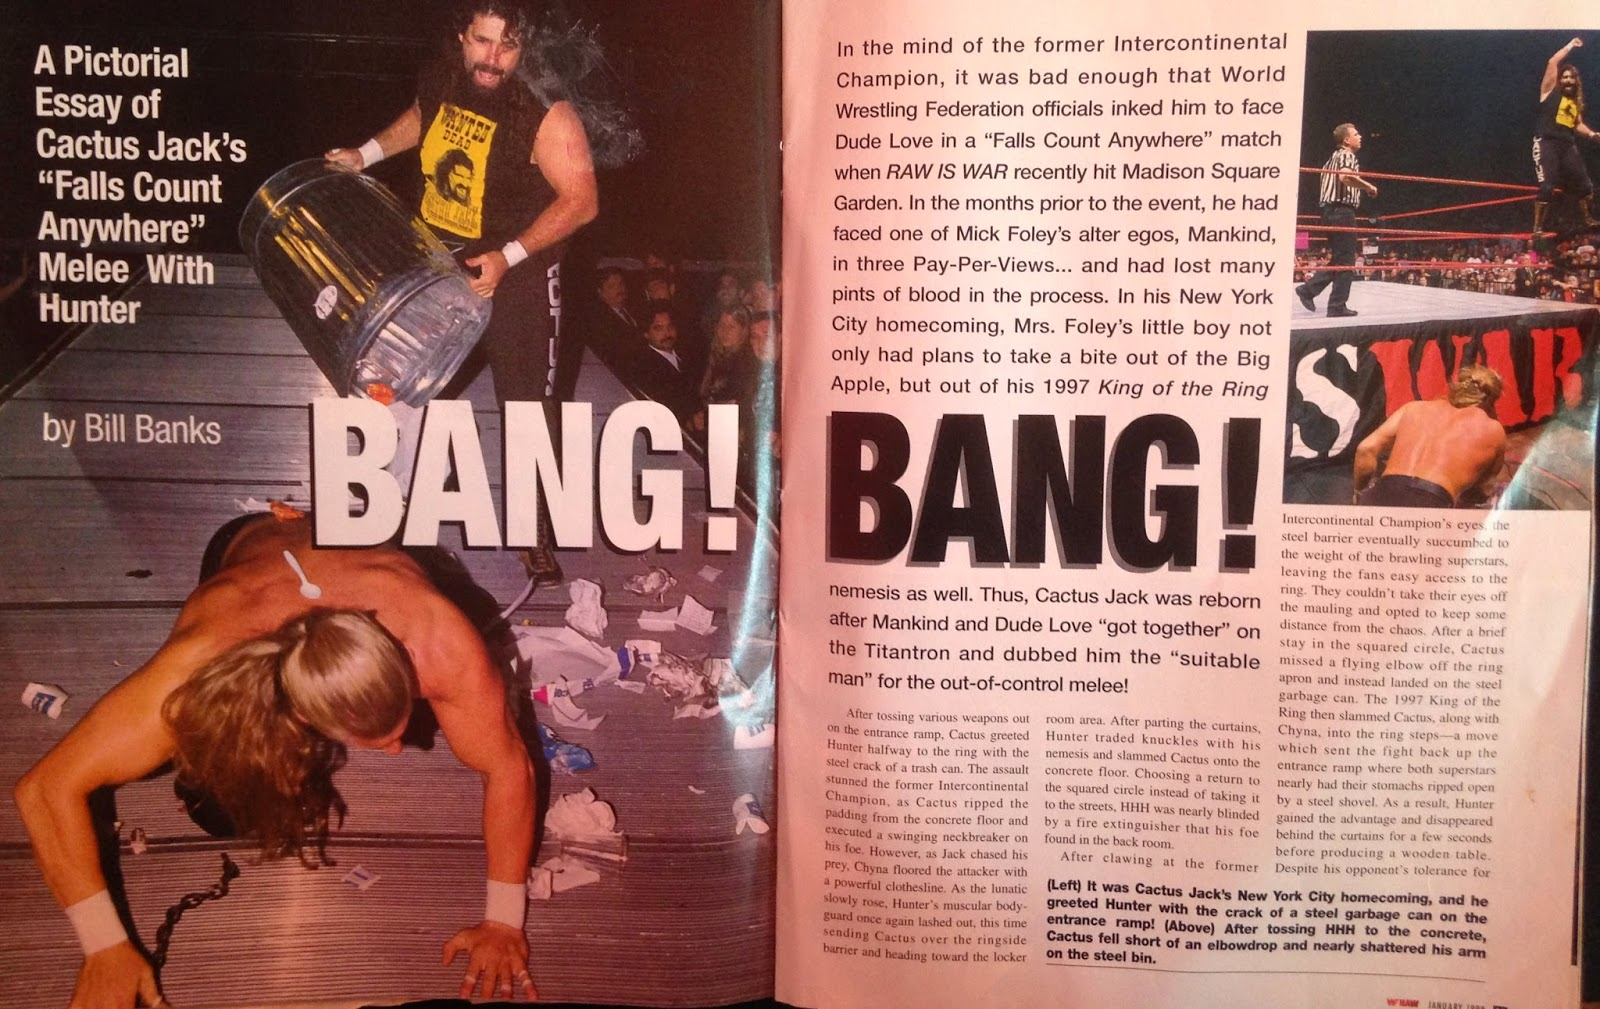 WWE: WWF RAW MAGAZINE - January 1998 - Triple H vs. Cactus Jack pictorial